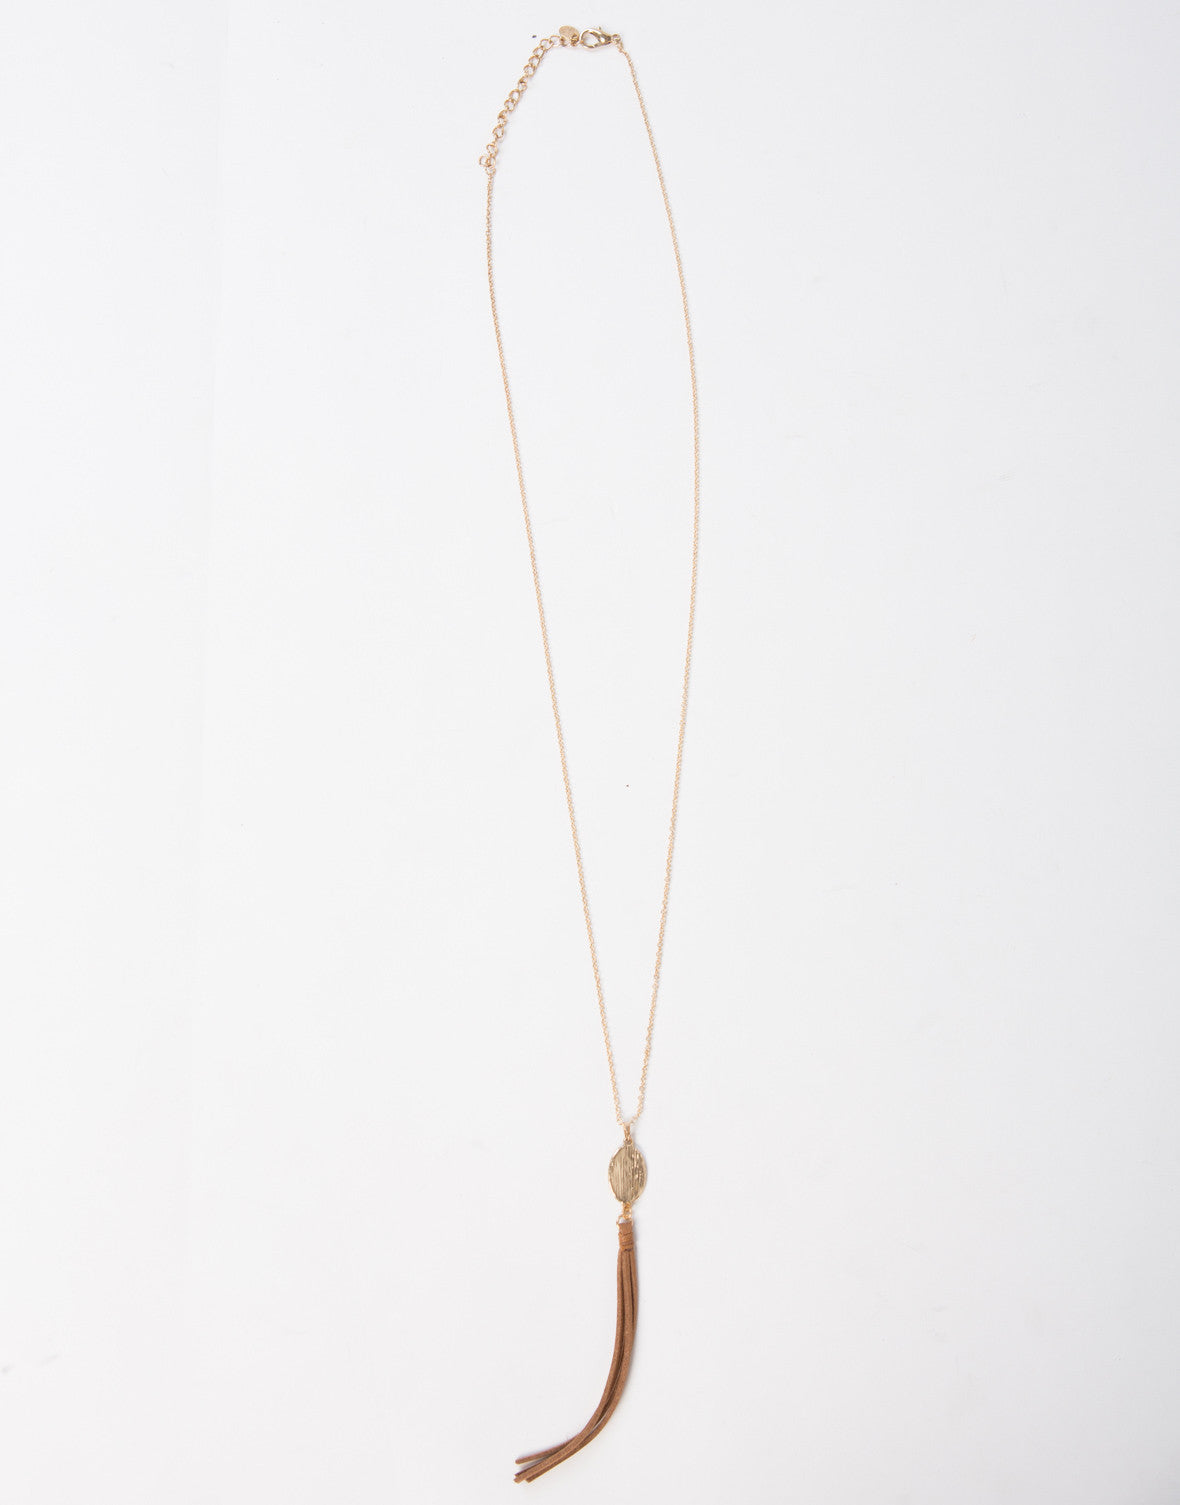 Tassel Long Chained Necklace